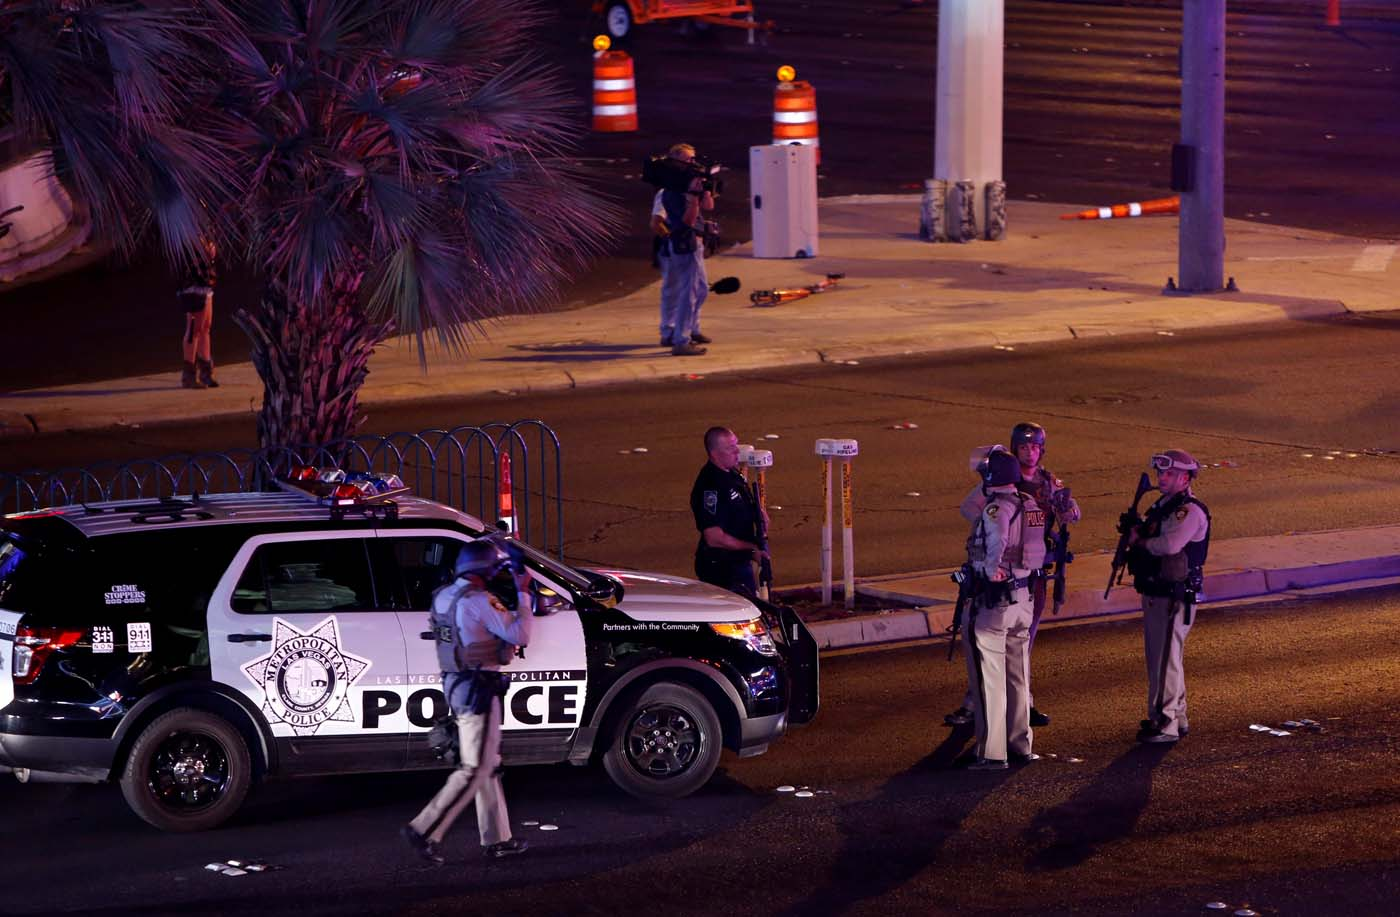 Las Vegas Metro Police officers gather near the intersection of Tropicana Avenue and Las Vegas Boulevard South after a mass shooting at a music festival on the Las Vegas Strip in Las Vegas, Nevada, U.S. early October 2, 2017. REUTERS/Las Vegas Sun/Steve Marcus